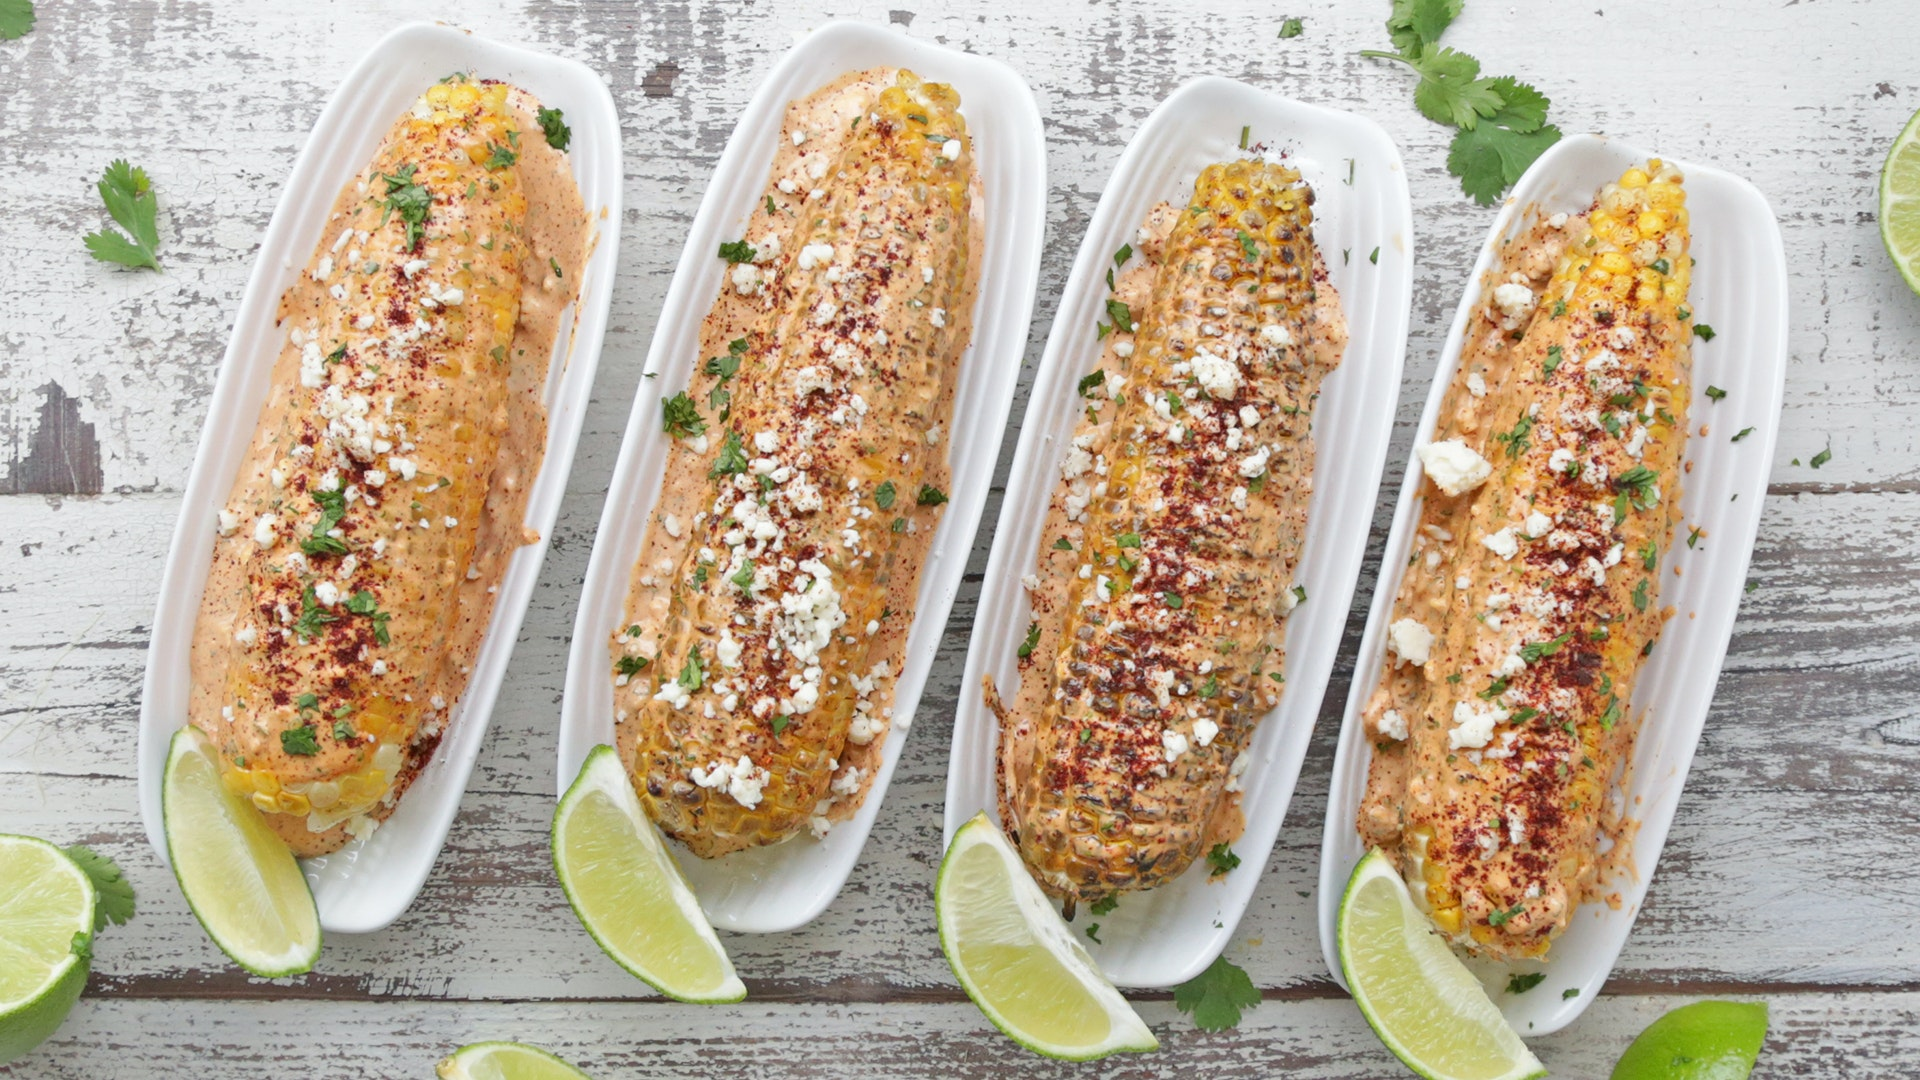 How to Make Mexican-Style Street Corn (Elotes)